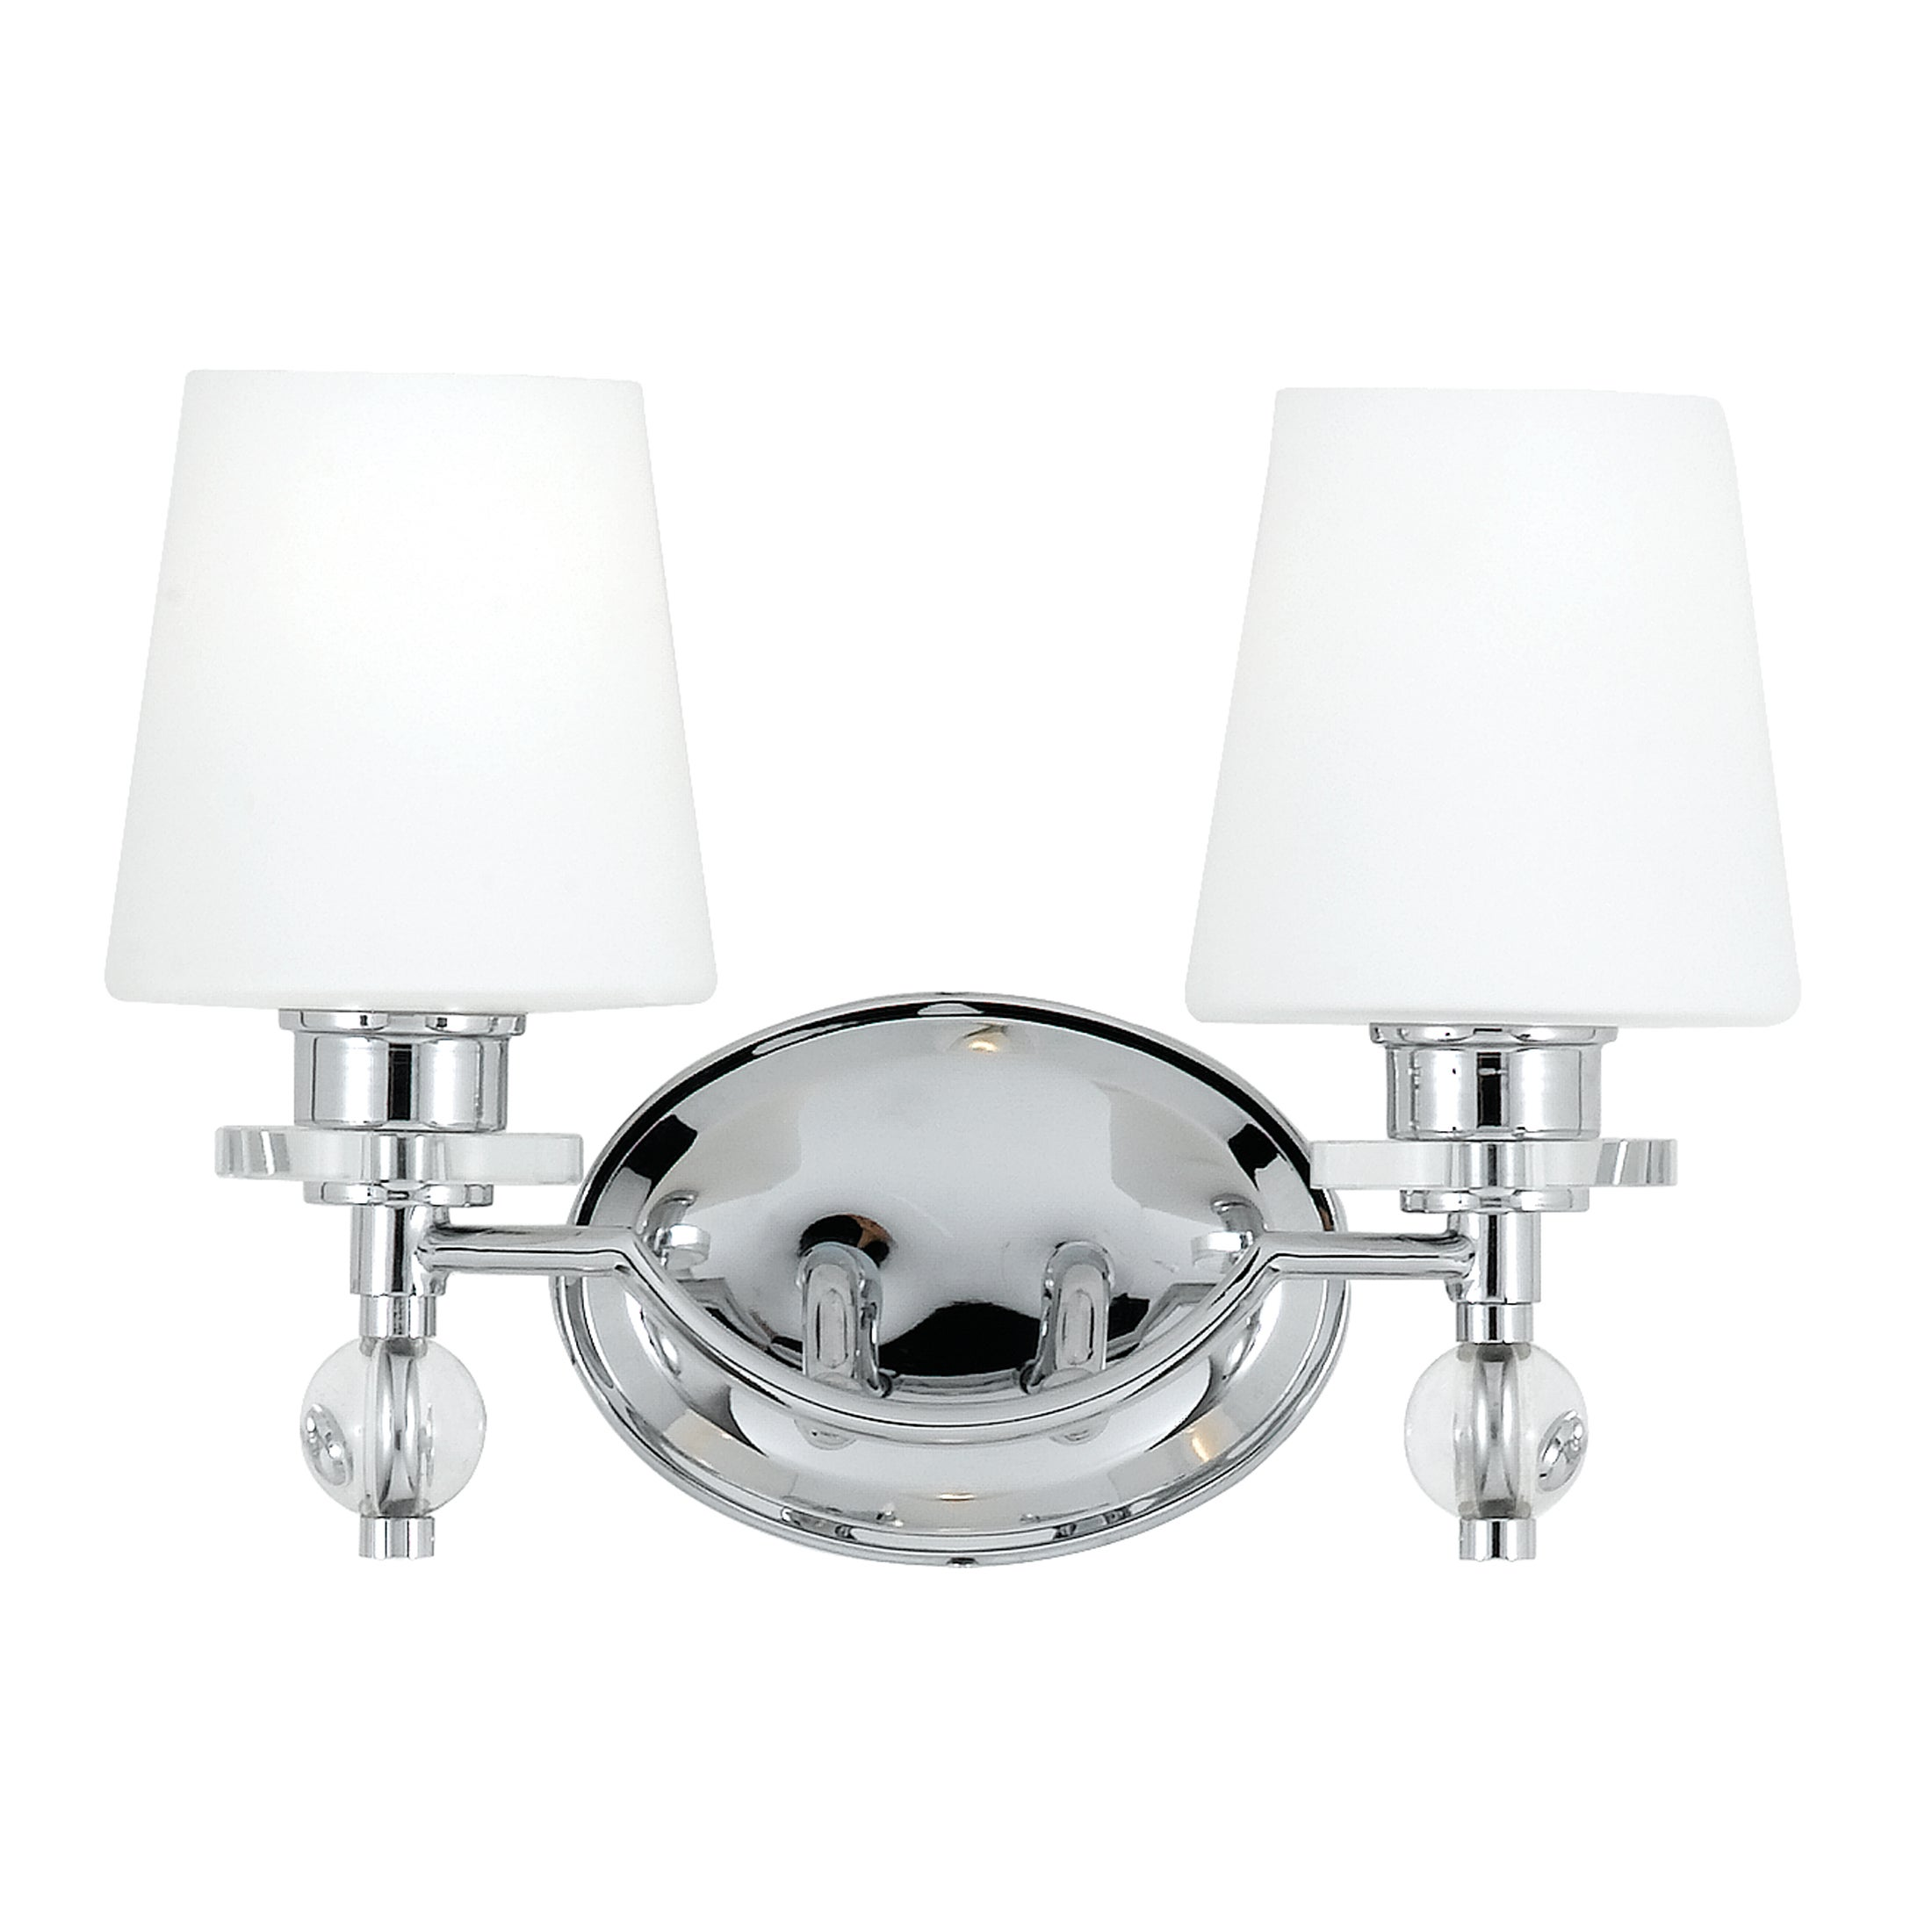 Quoizel 'Hollister' Two-light Bath Fixture